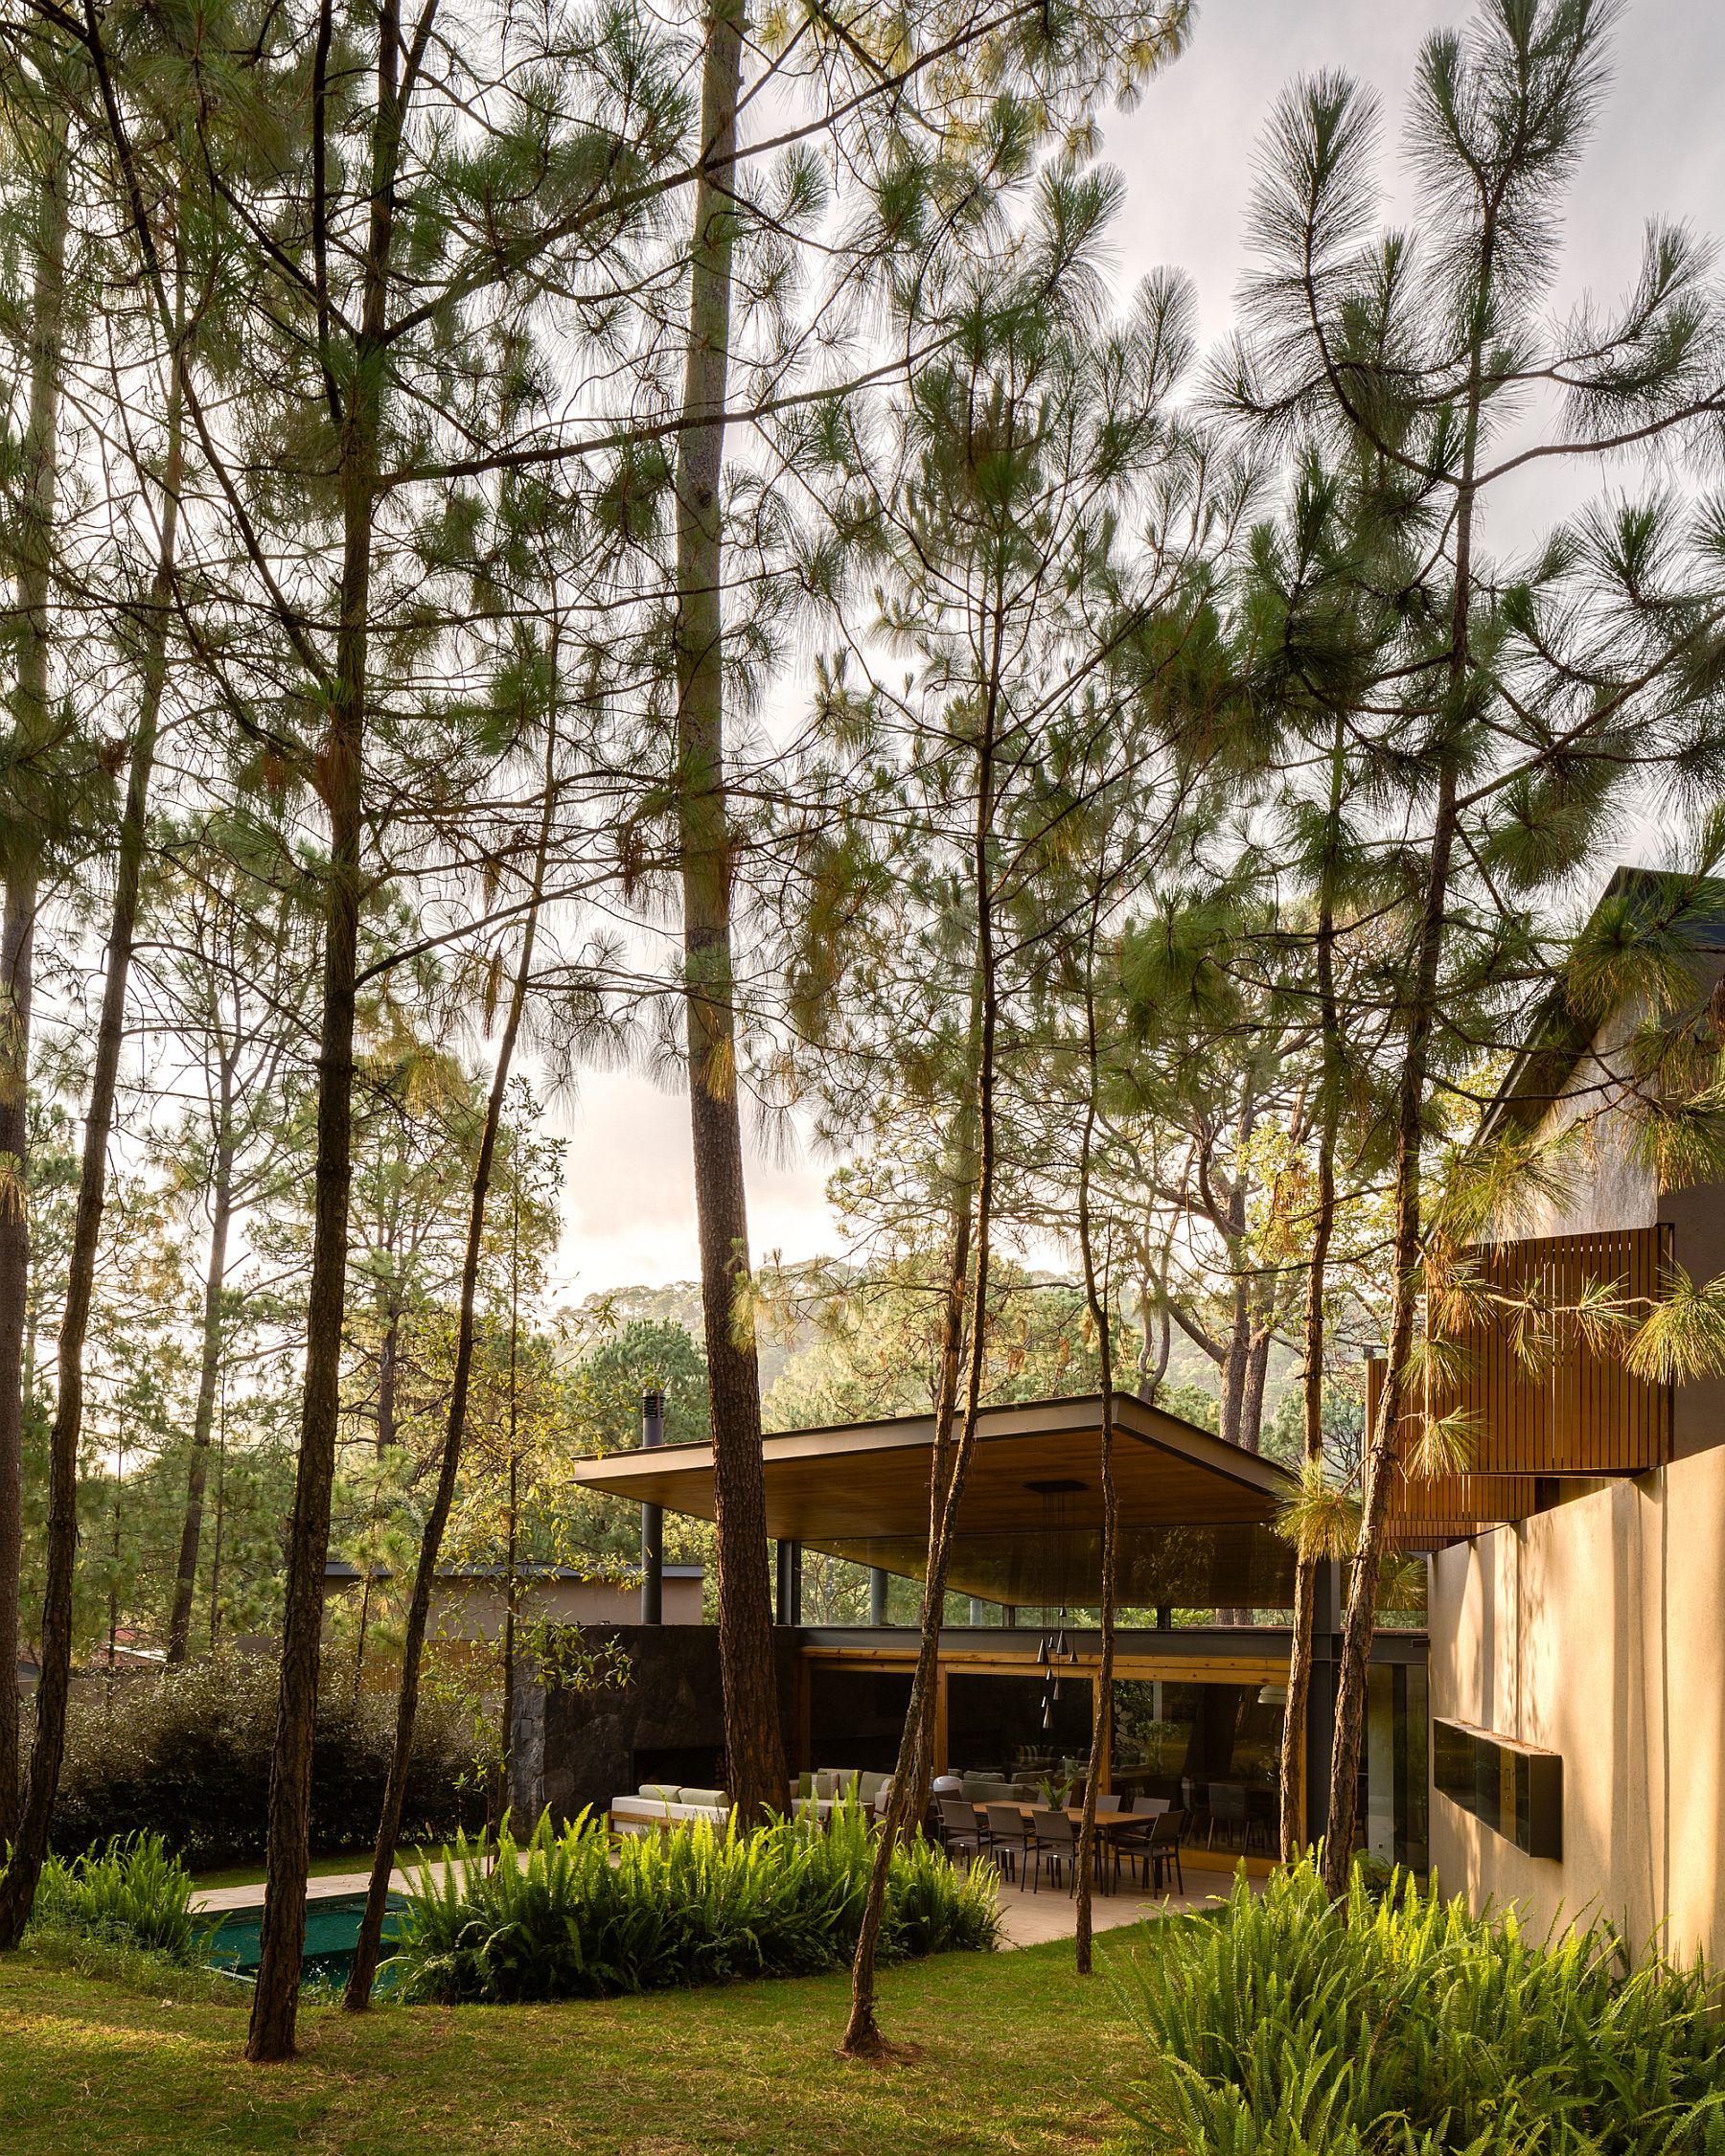 Tall trees and forest landscape surround the Five Houses in Mexico